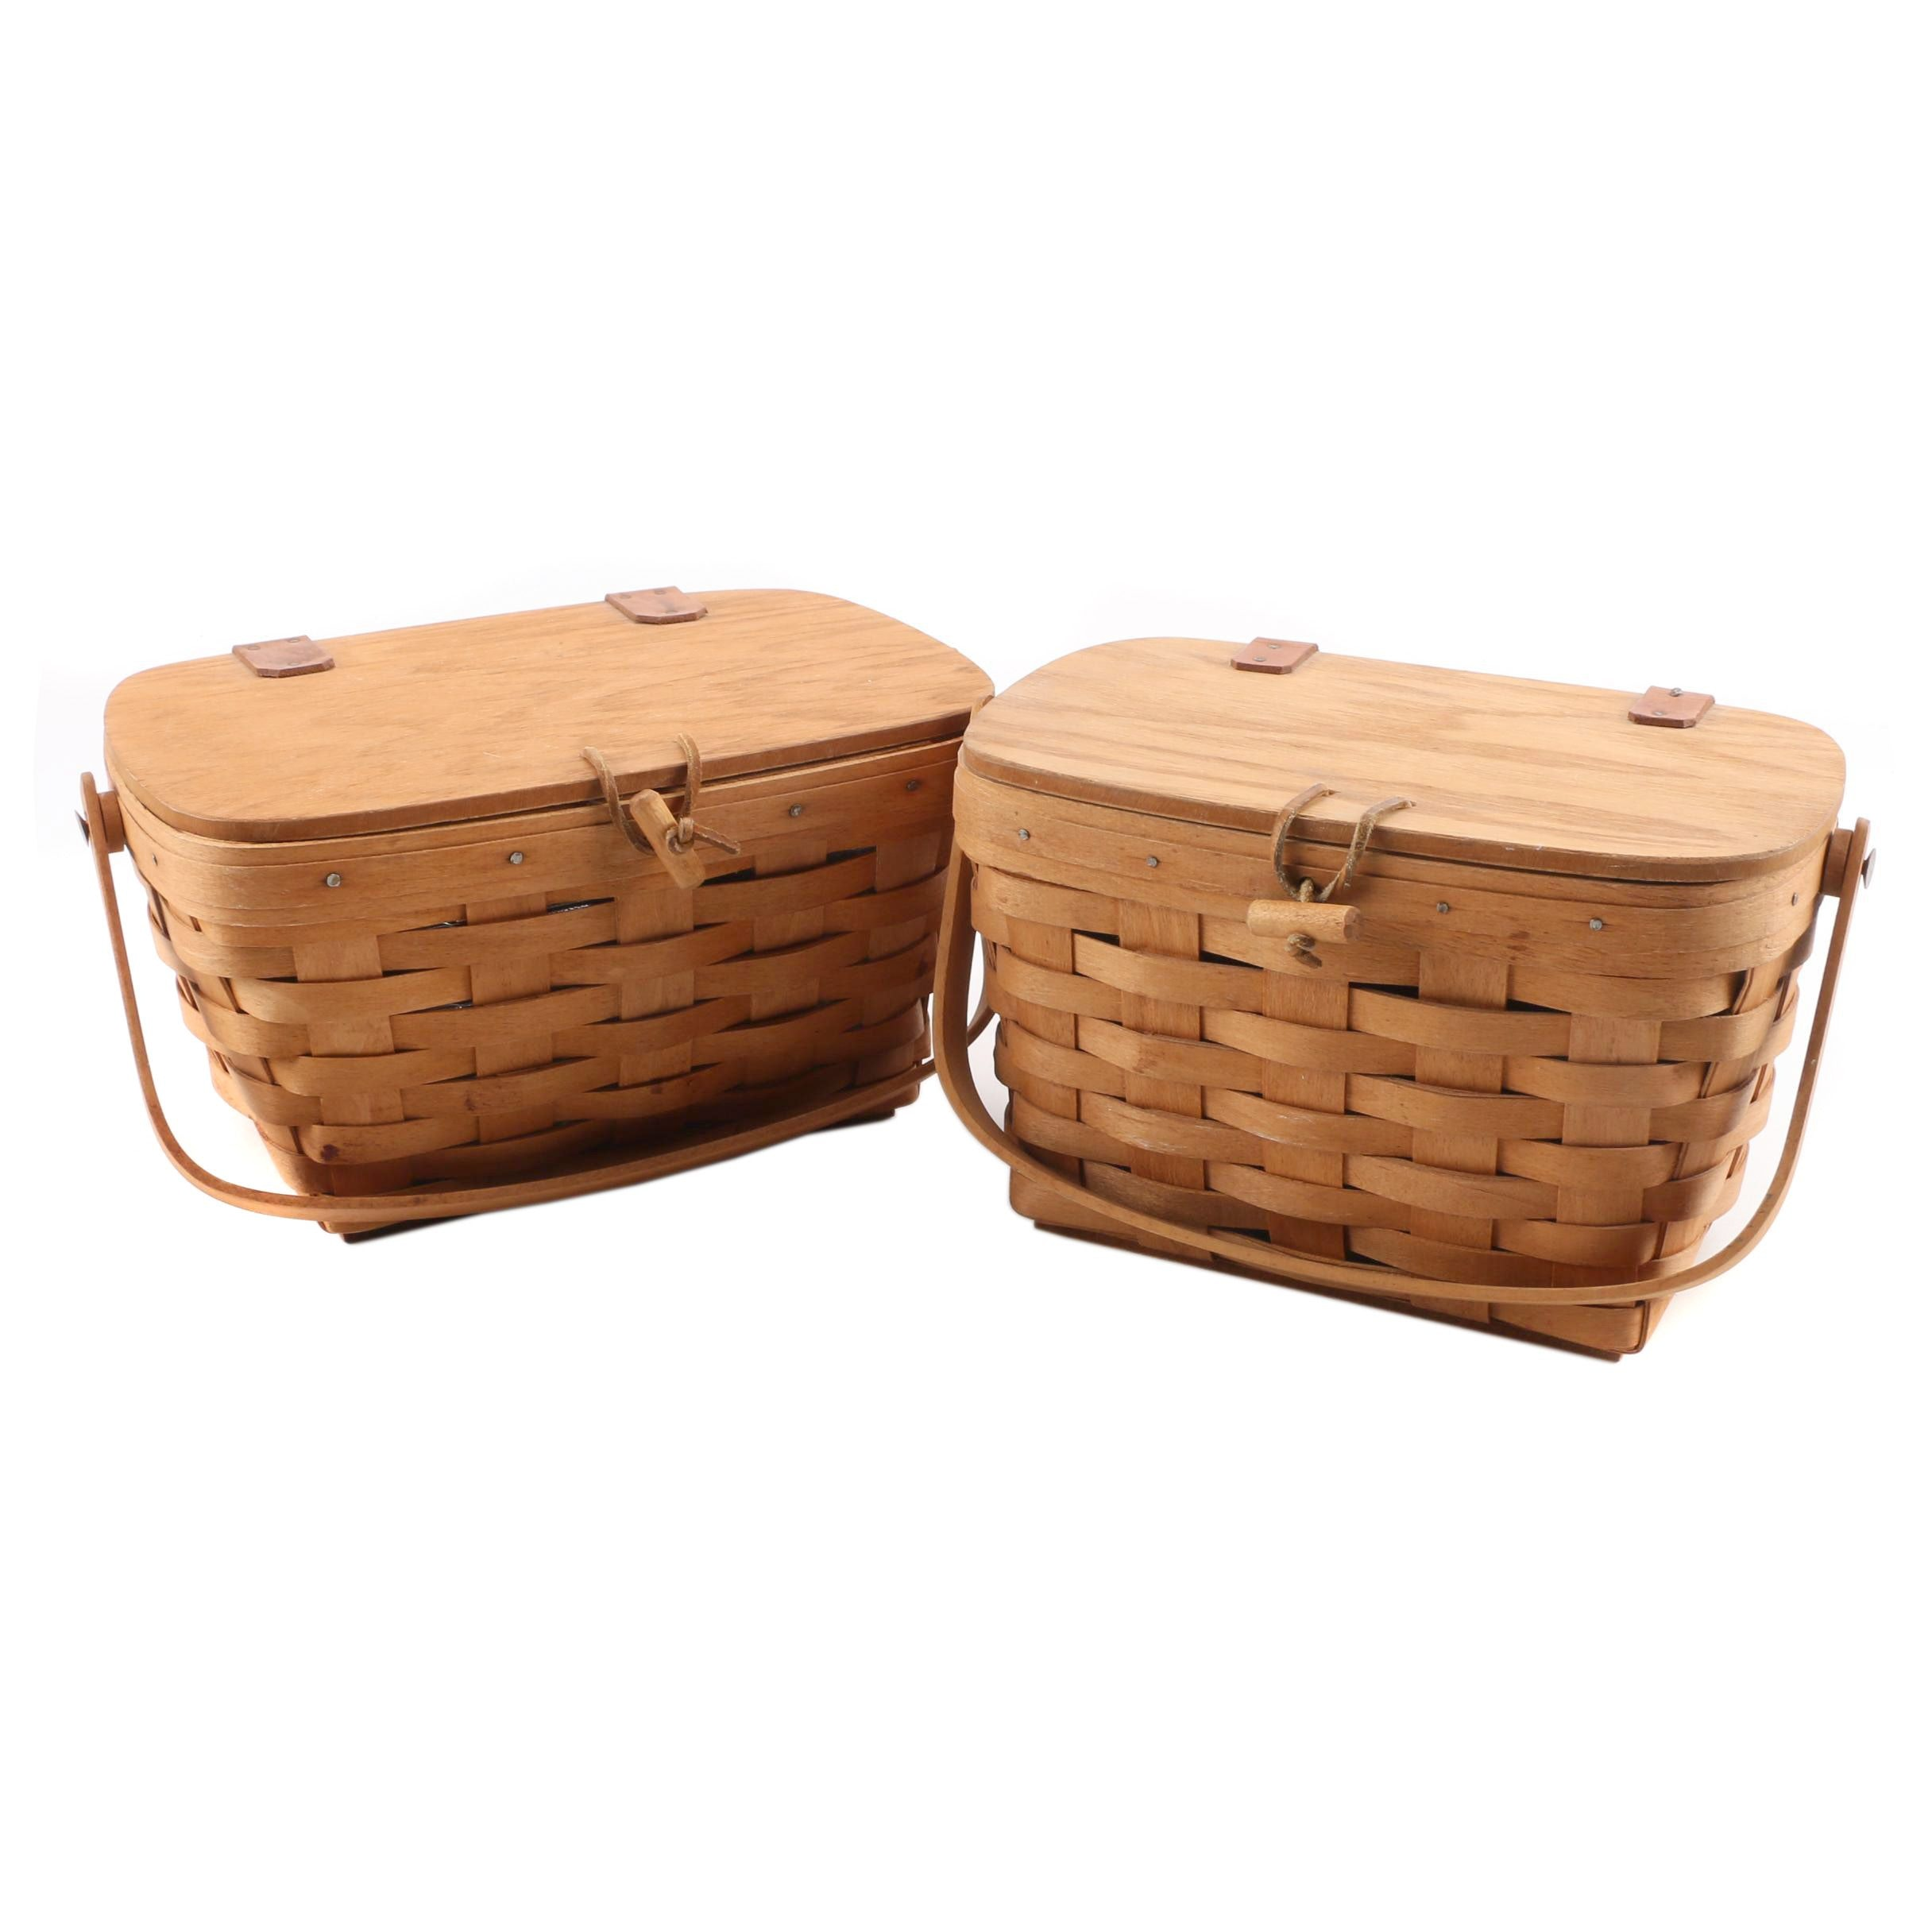 1990 and 1993 Handwoven Lidded and Handled Baskets by Longaberger